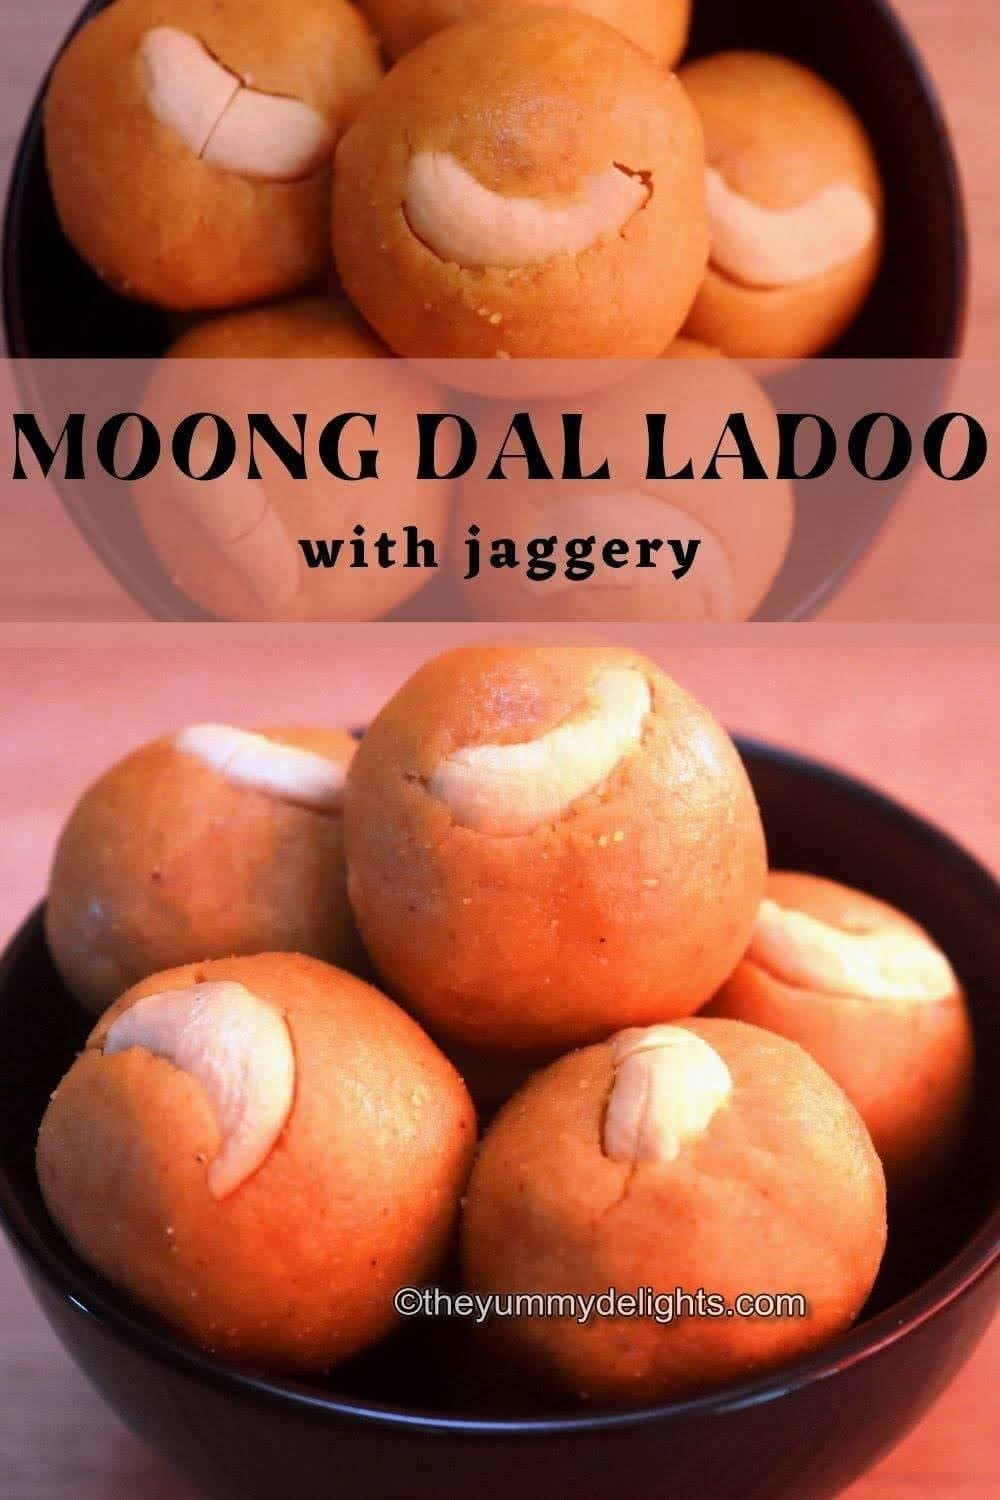 close-up image of moong dal ladoo made with jaggery and garnished with cashews and served on a black bowl.